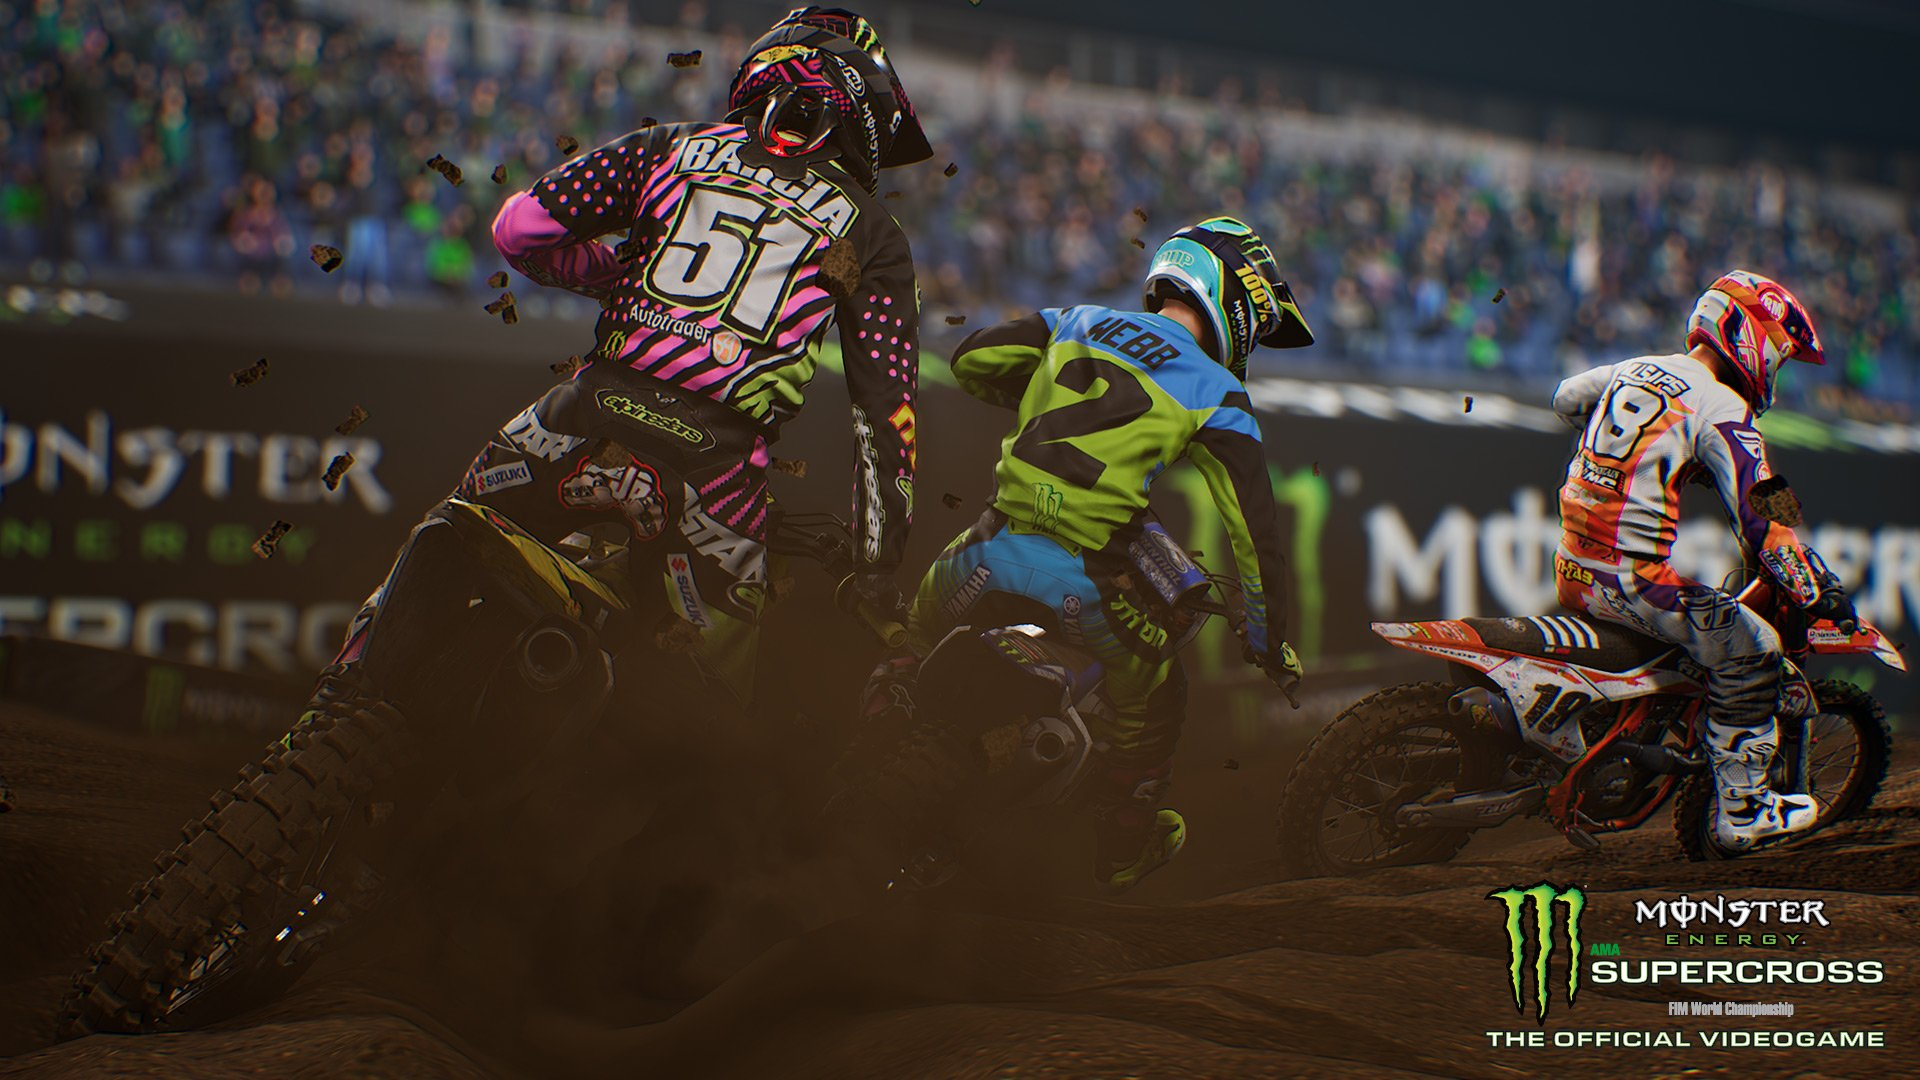 monster energy supercross 39 track editor is exactly what i. Black Bedroom Furniture Sets. Home Design Ideas